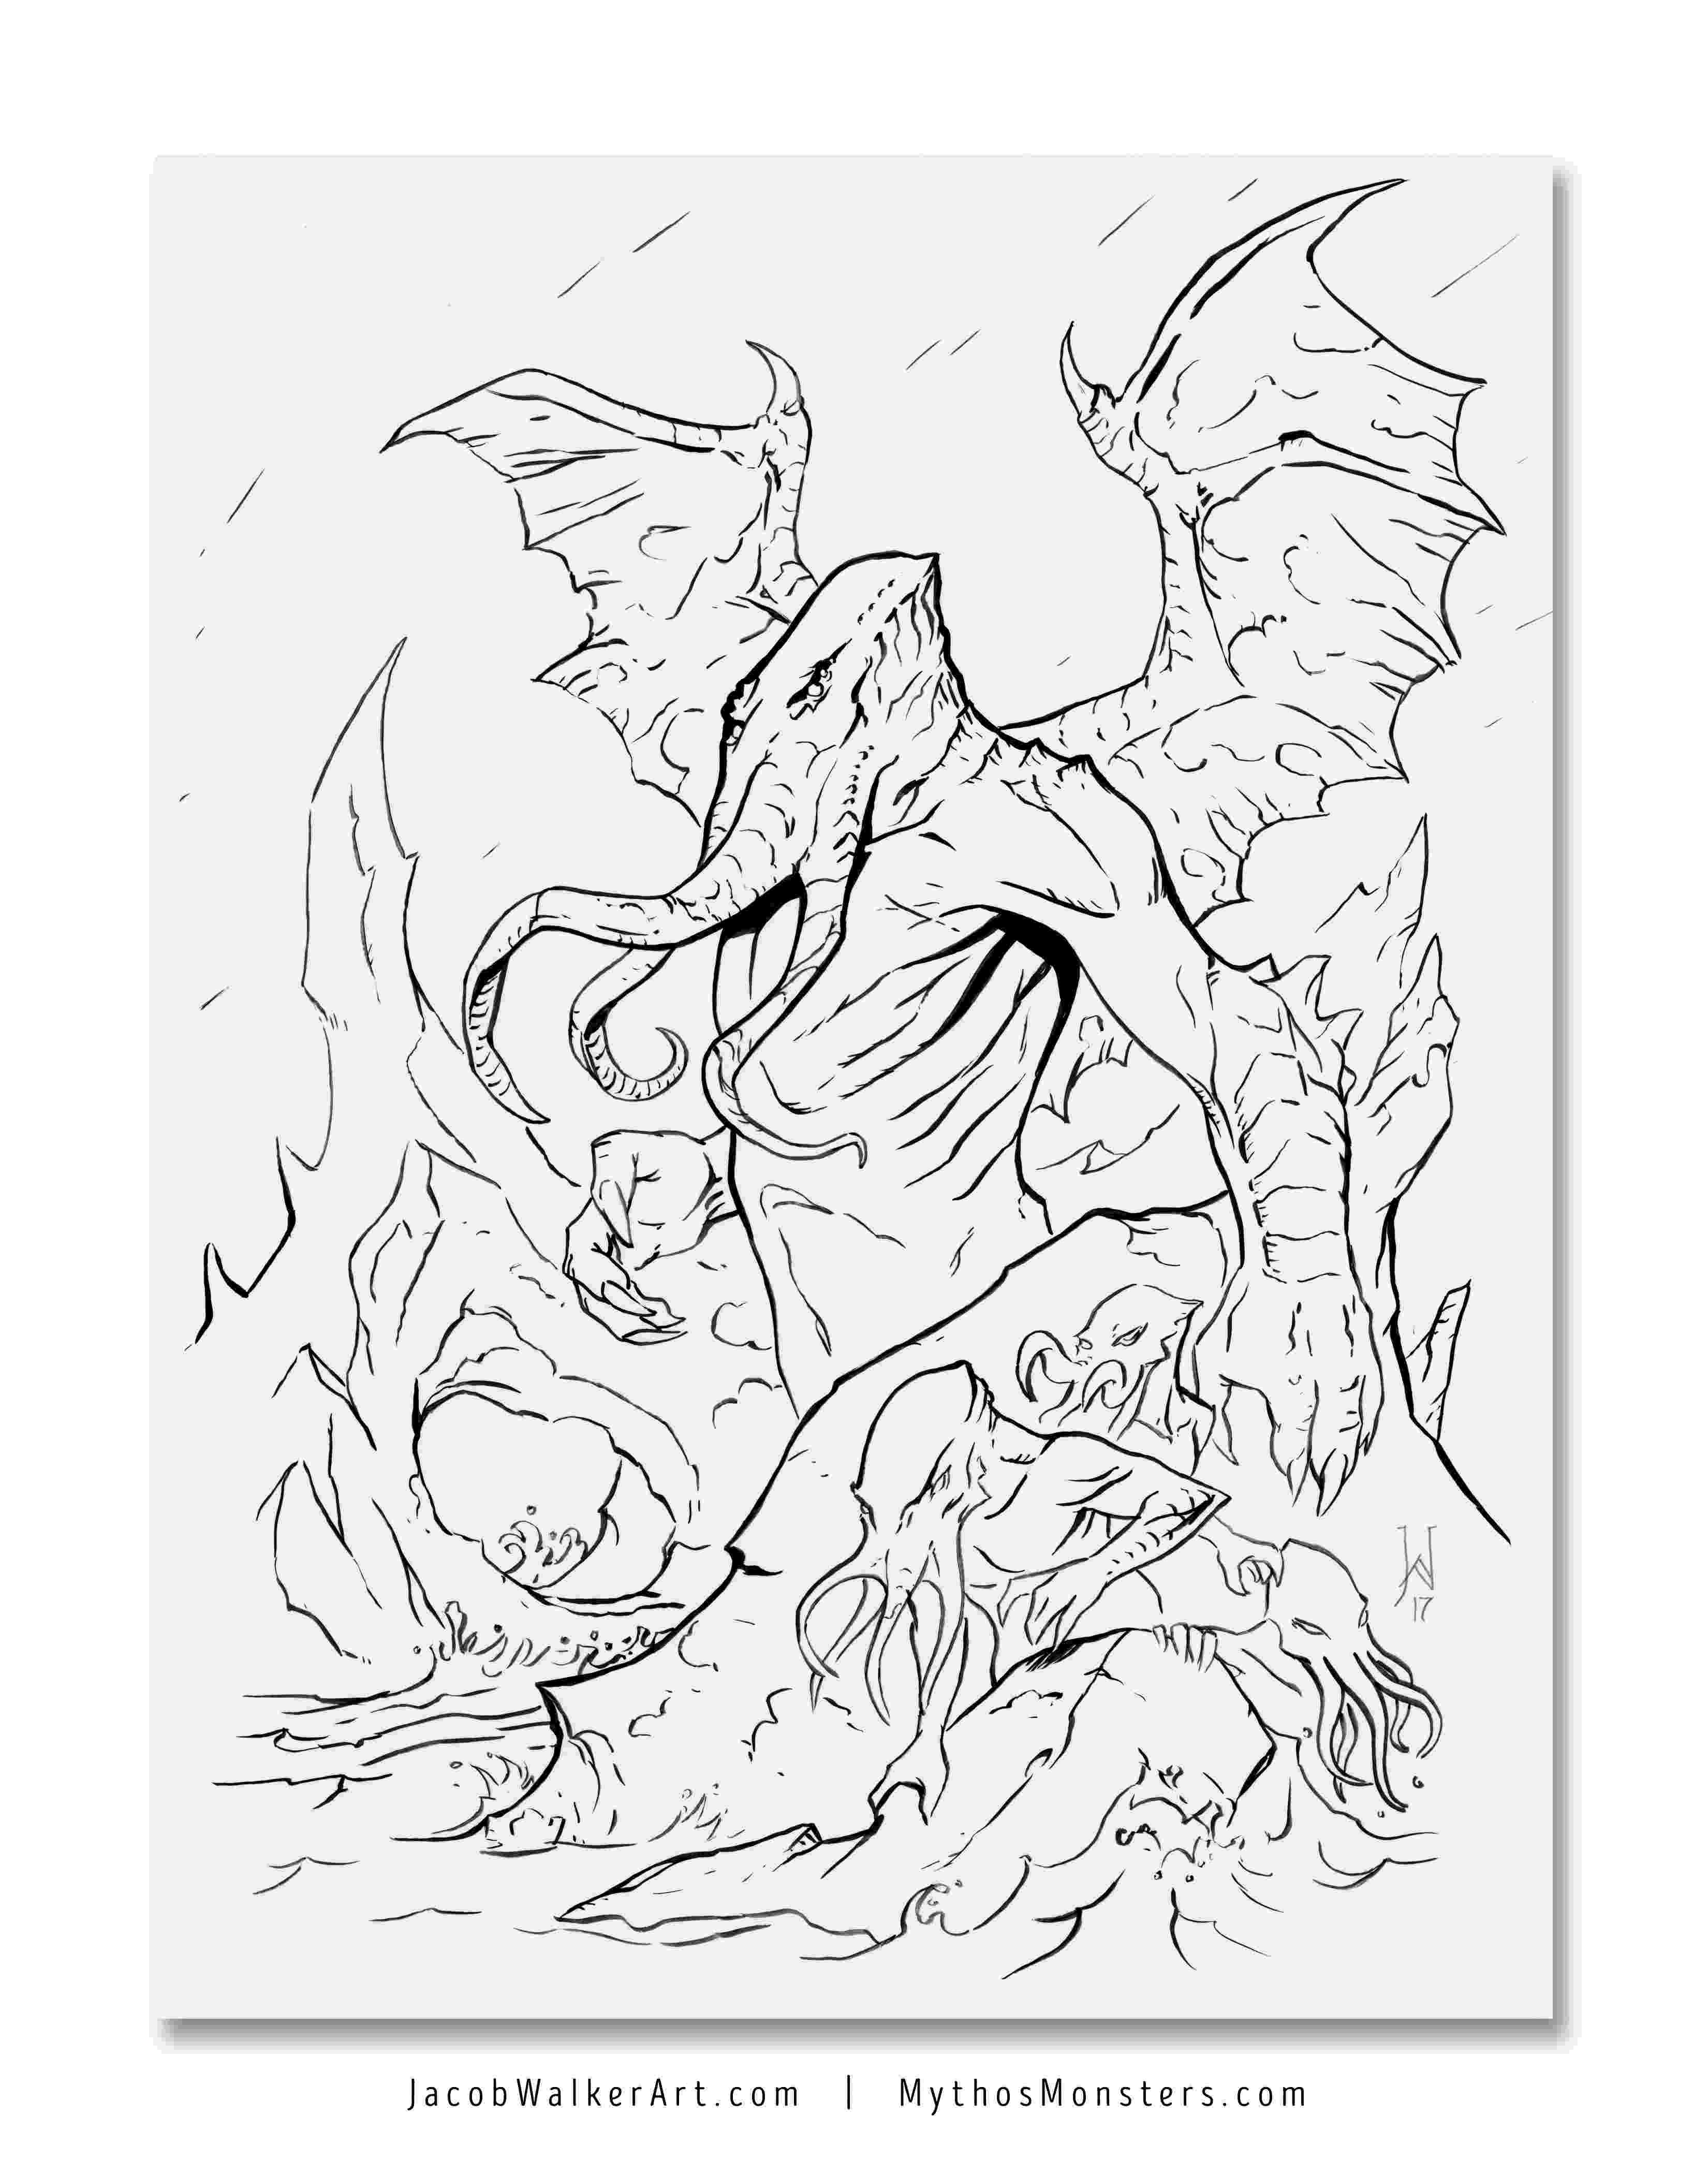 is for cthulhu coloring book cthulhu coloring page cthulhu coloring pages cthulhu cthulhu coloring book is for